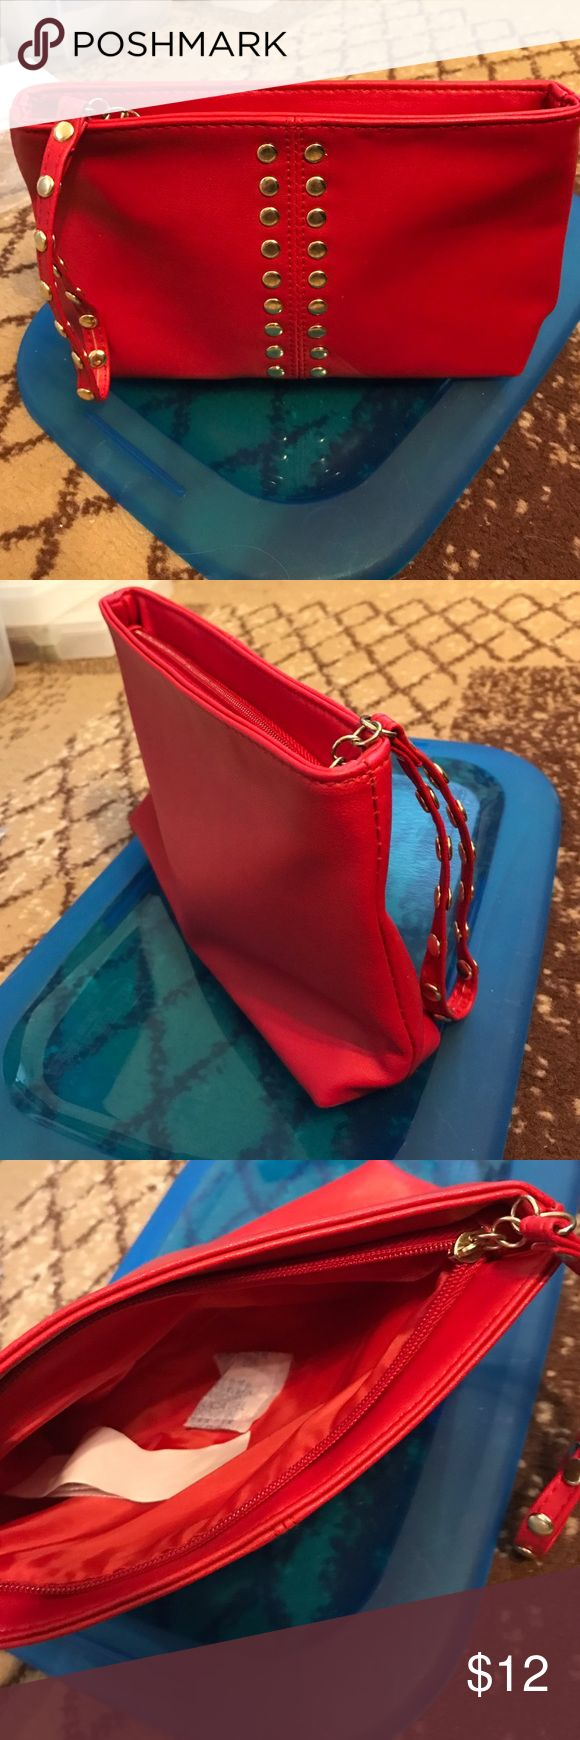 """Red studded faux leather make up bag. BNWT. Measures from the bottom: 8"""" x 2"""" and 6"""". Tapers upwards to where it zippers at top. A soft feeling leather. Gold tone hardware. Strap: 5.5"""". You can never have enough bags, in my opinion. This is a great red to add a splash of color to any outfit. BNWT. You can use this as a cosmetic bag or clutch to carry around. Bags Clutches & Wristlets"""